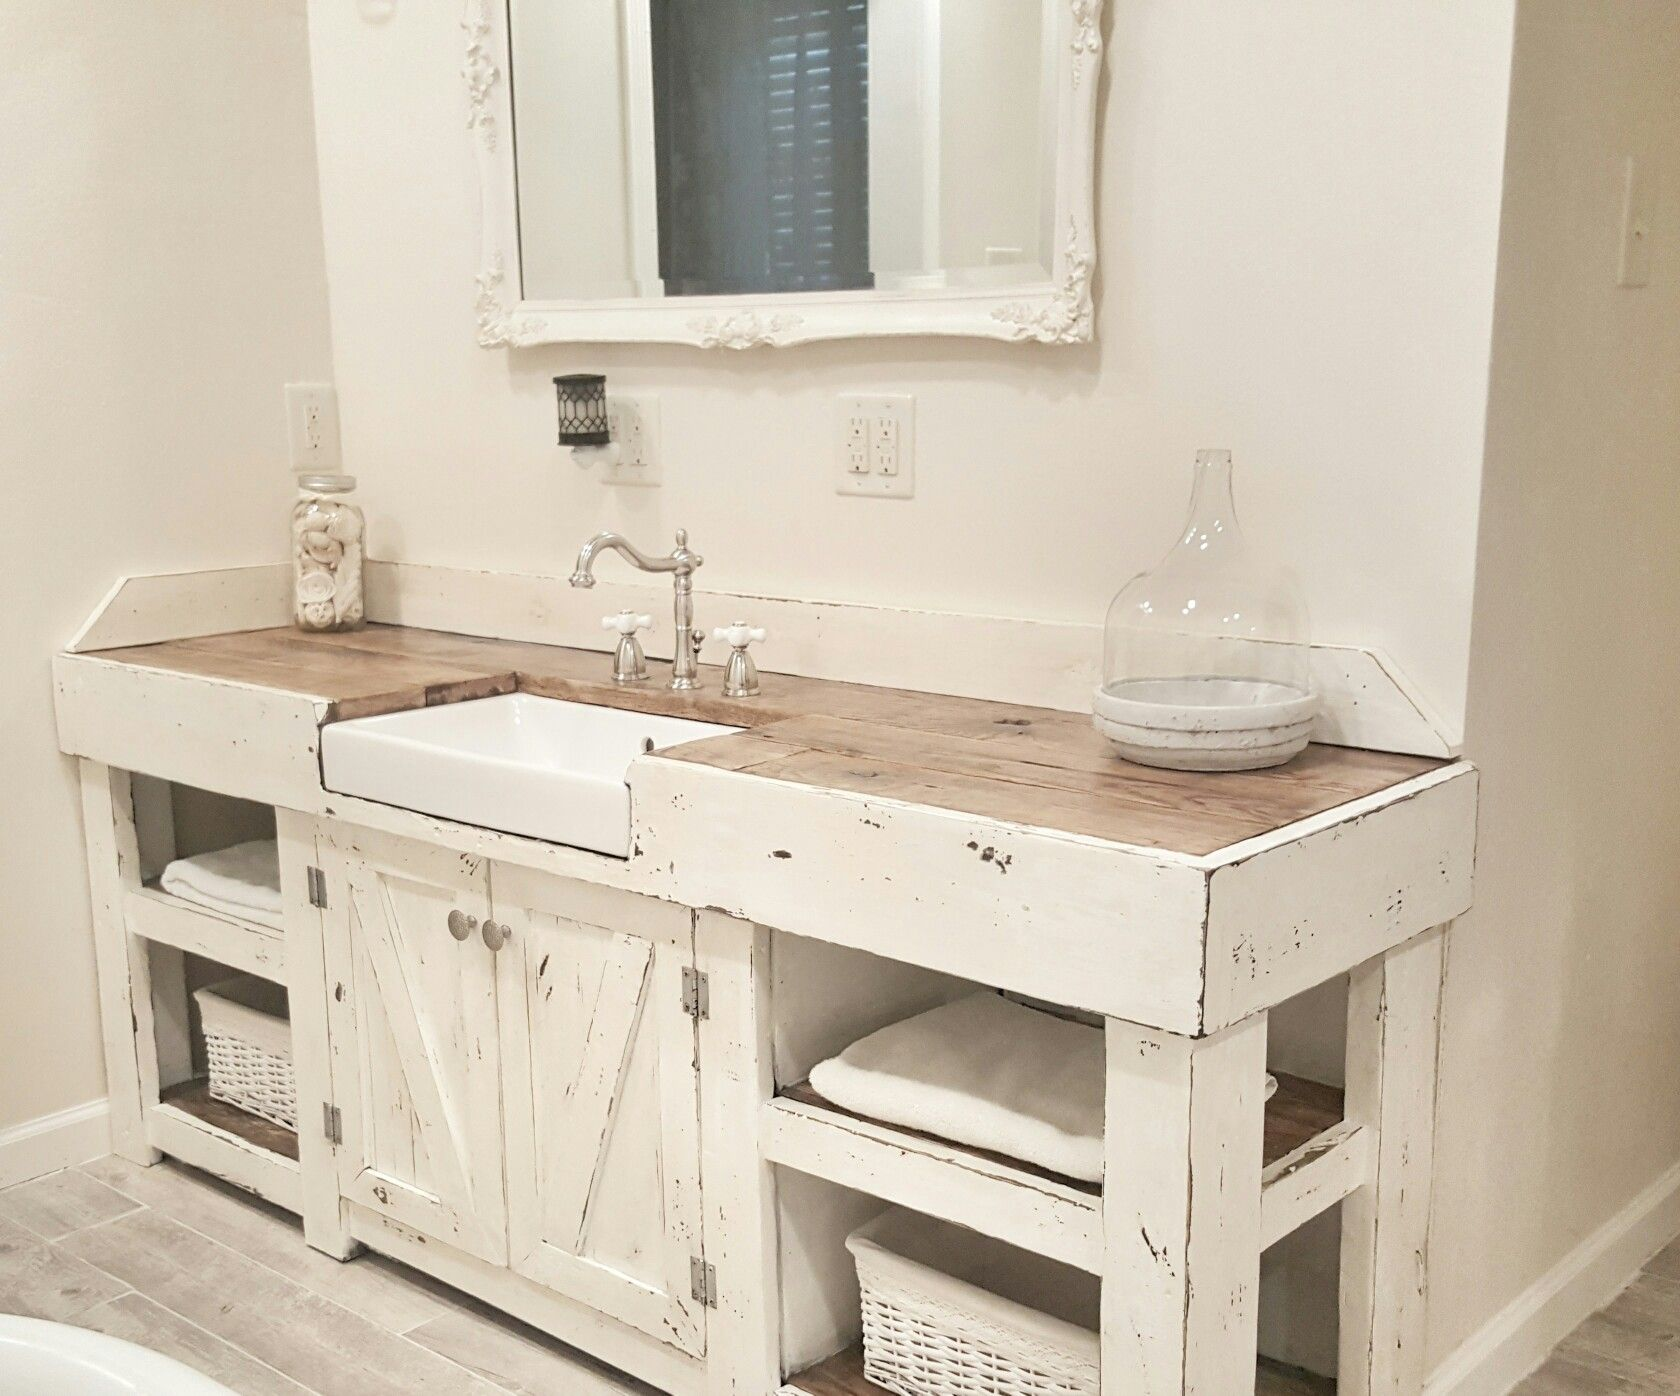 Cottage bathroom farmhouse bathroom farmhouse vanity for Bathroom vanity plans